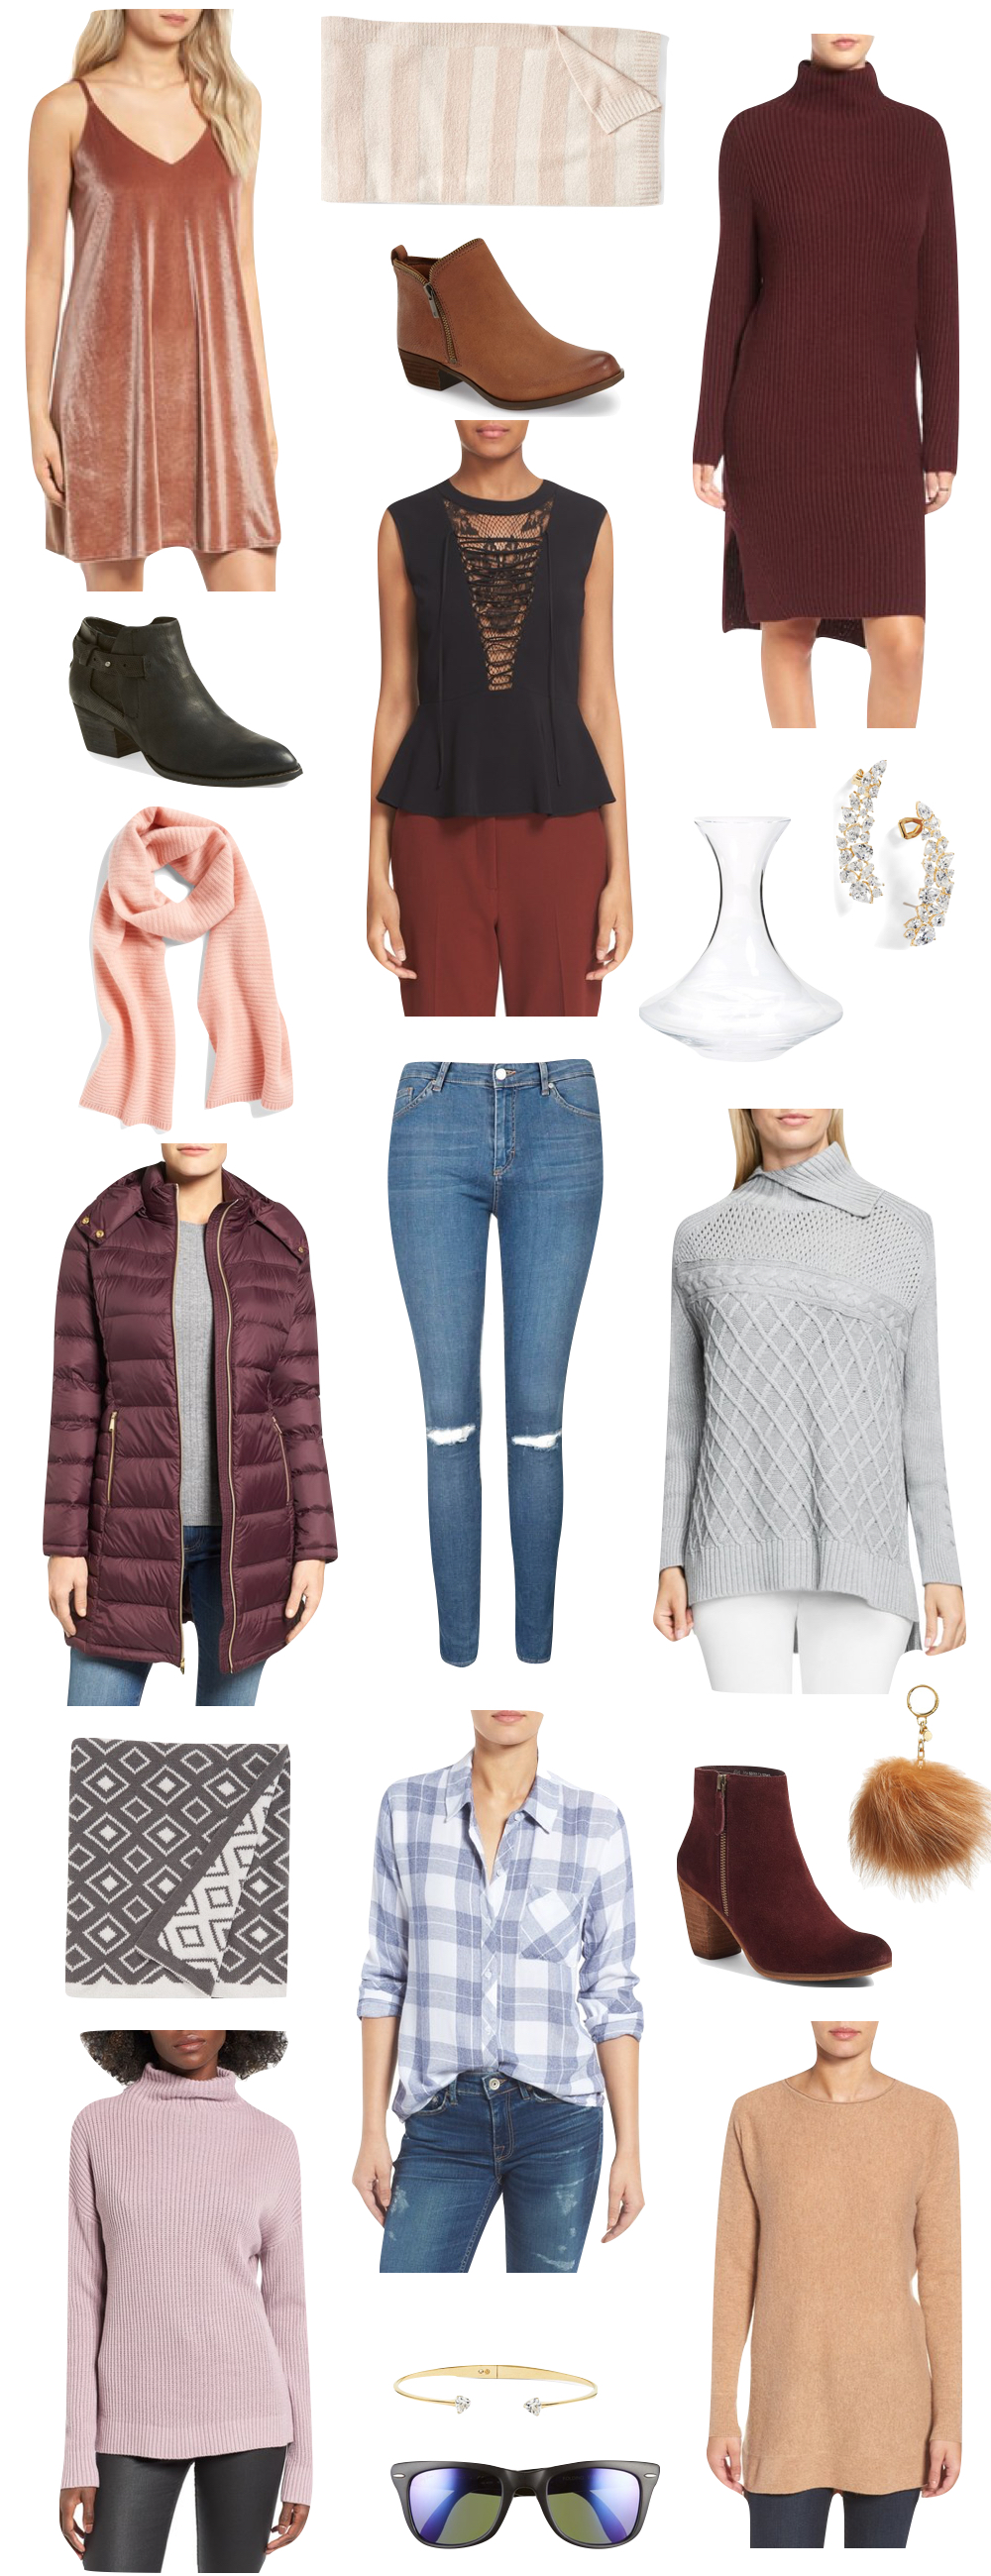 Nordstrom Half Yearly Sale Picks 2016 | The Stripe Blog